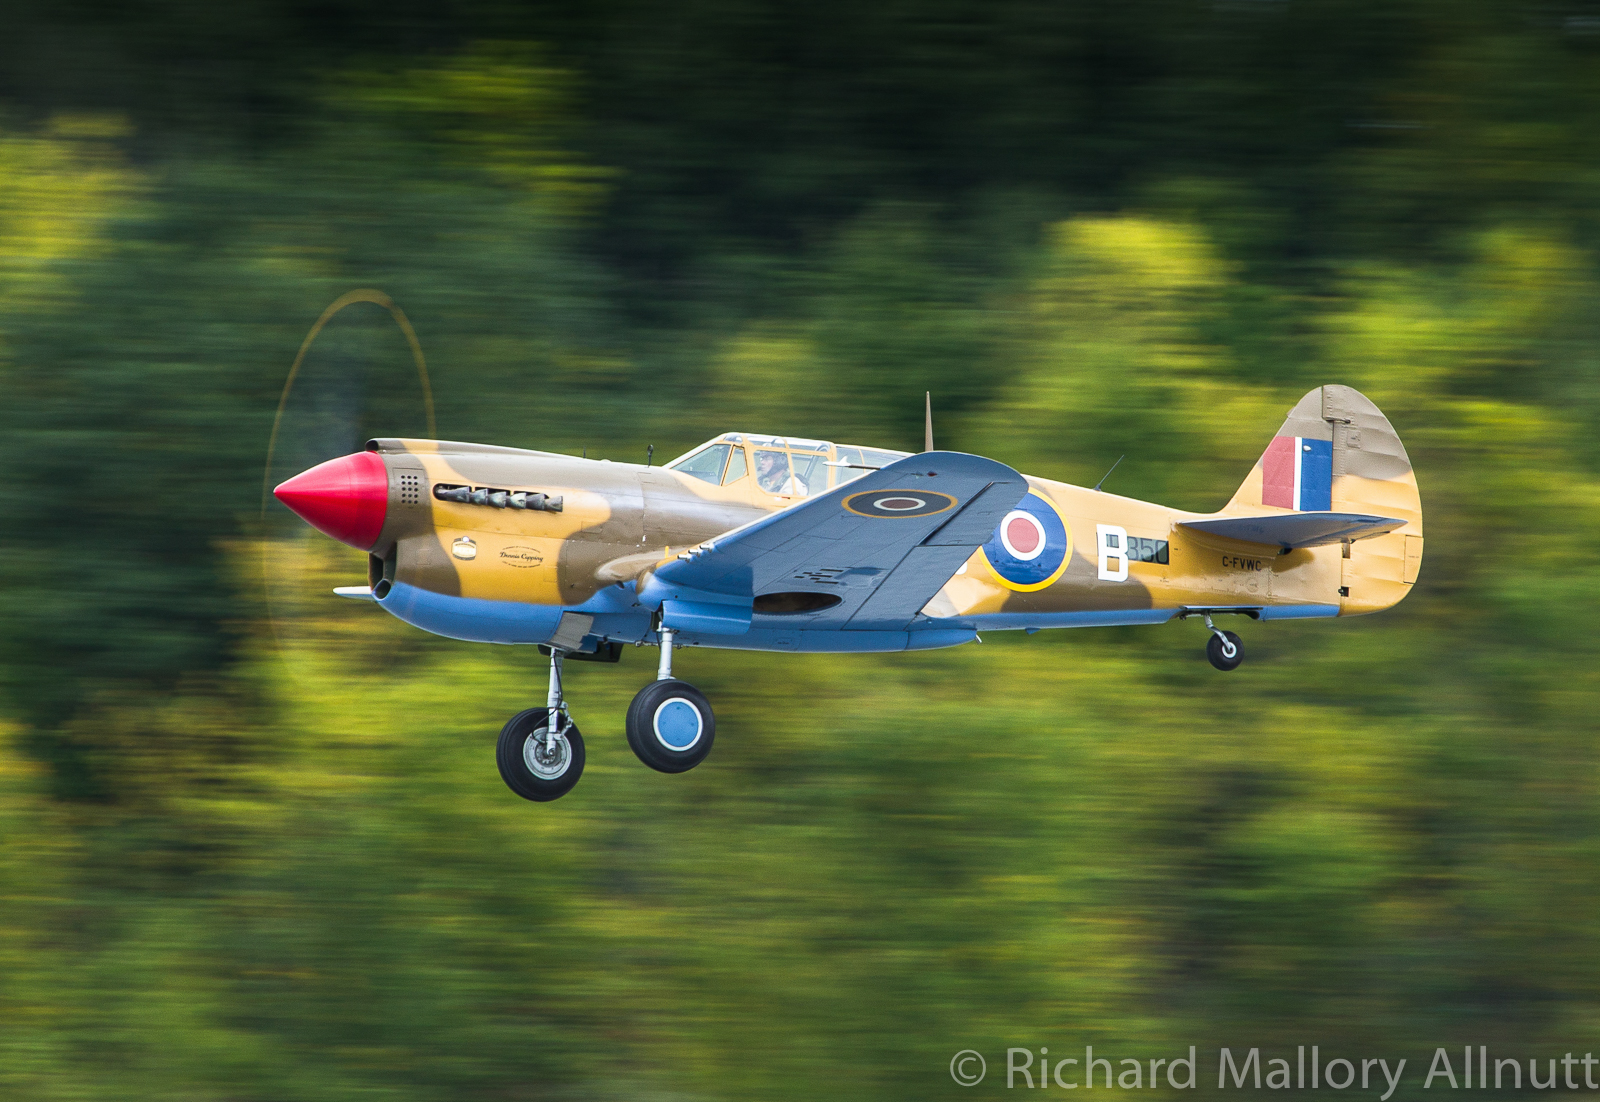 Dave Hadfield roars into the sky in Vintage Wings of Canada's Curtiss Kittyhawk IV. (photo by Richard Mallory Allnutt)